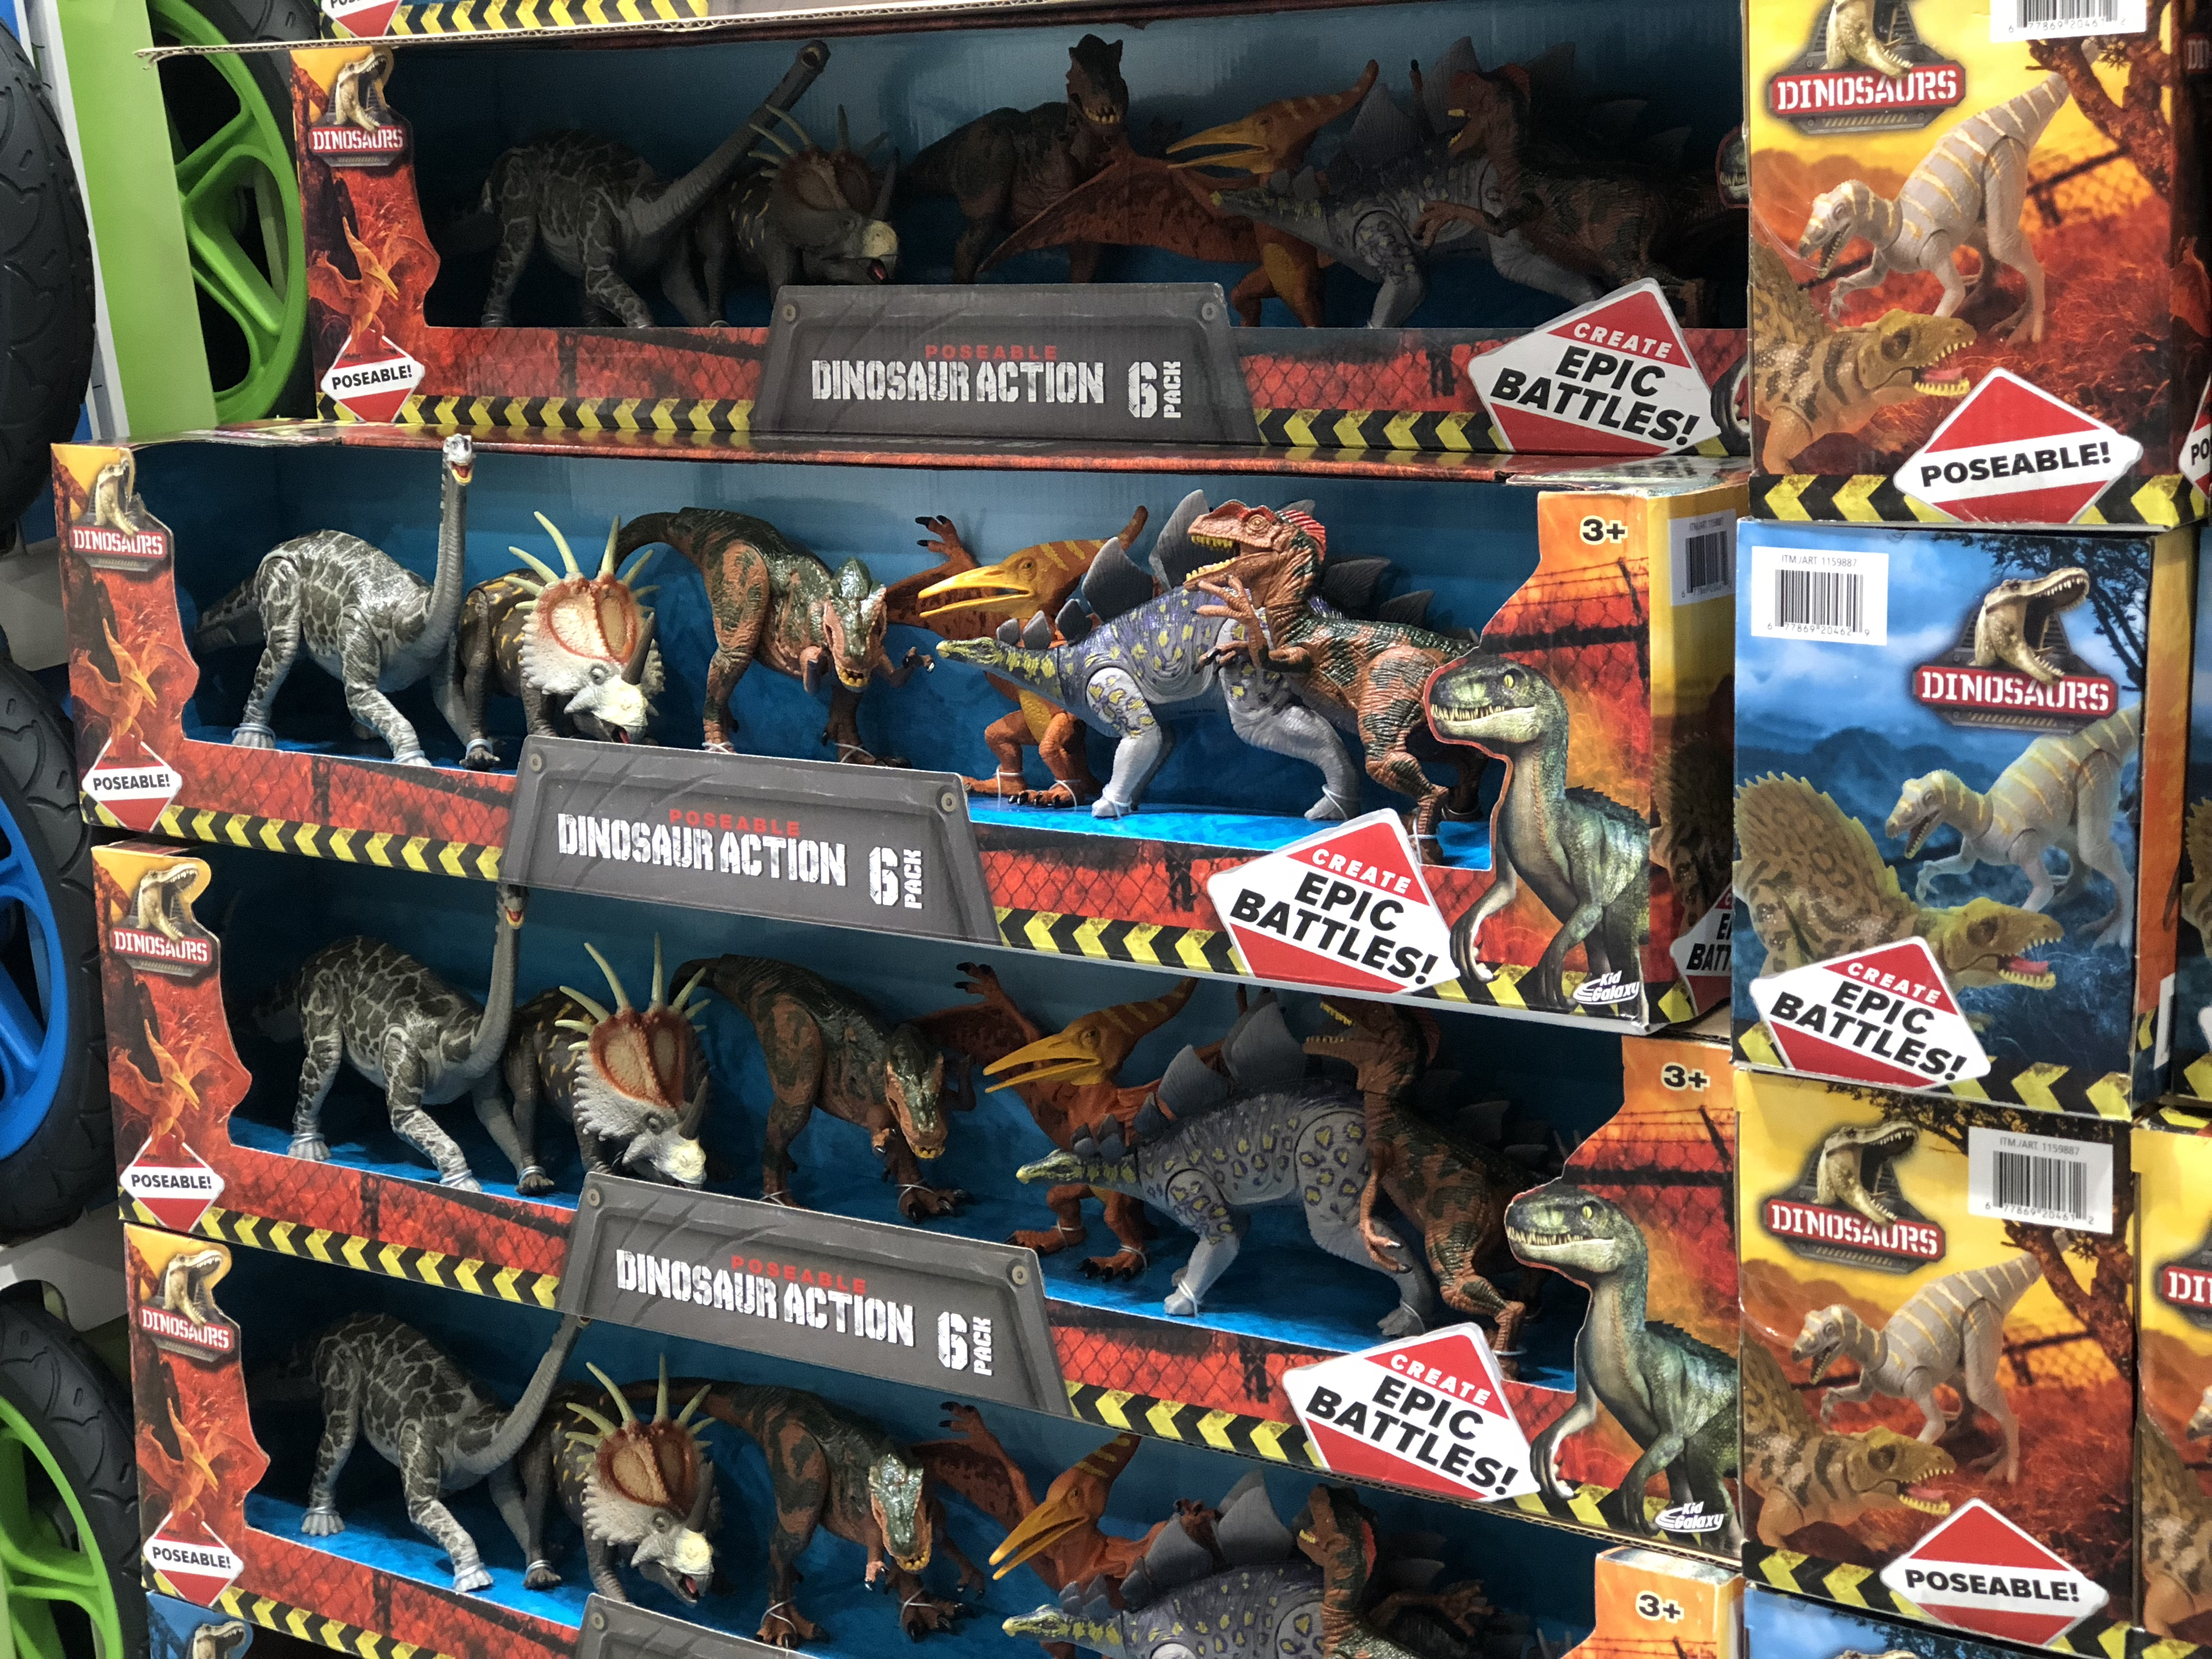 The best holiday toy deals for 2018 include Poseable dinosaurs at Costco